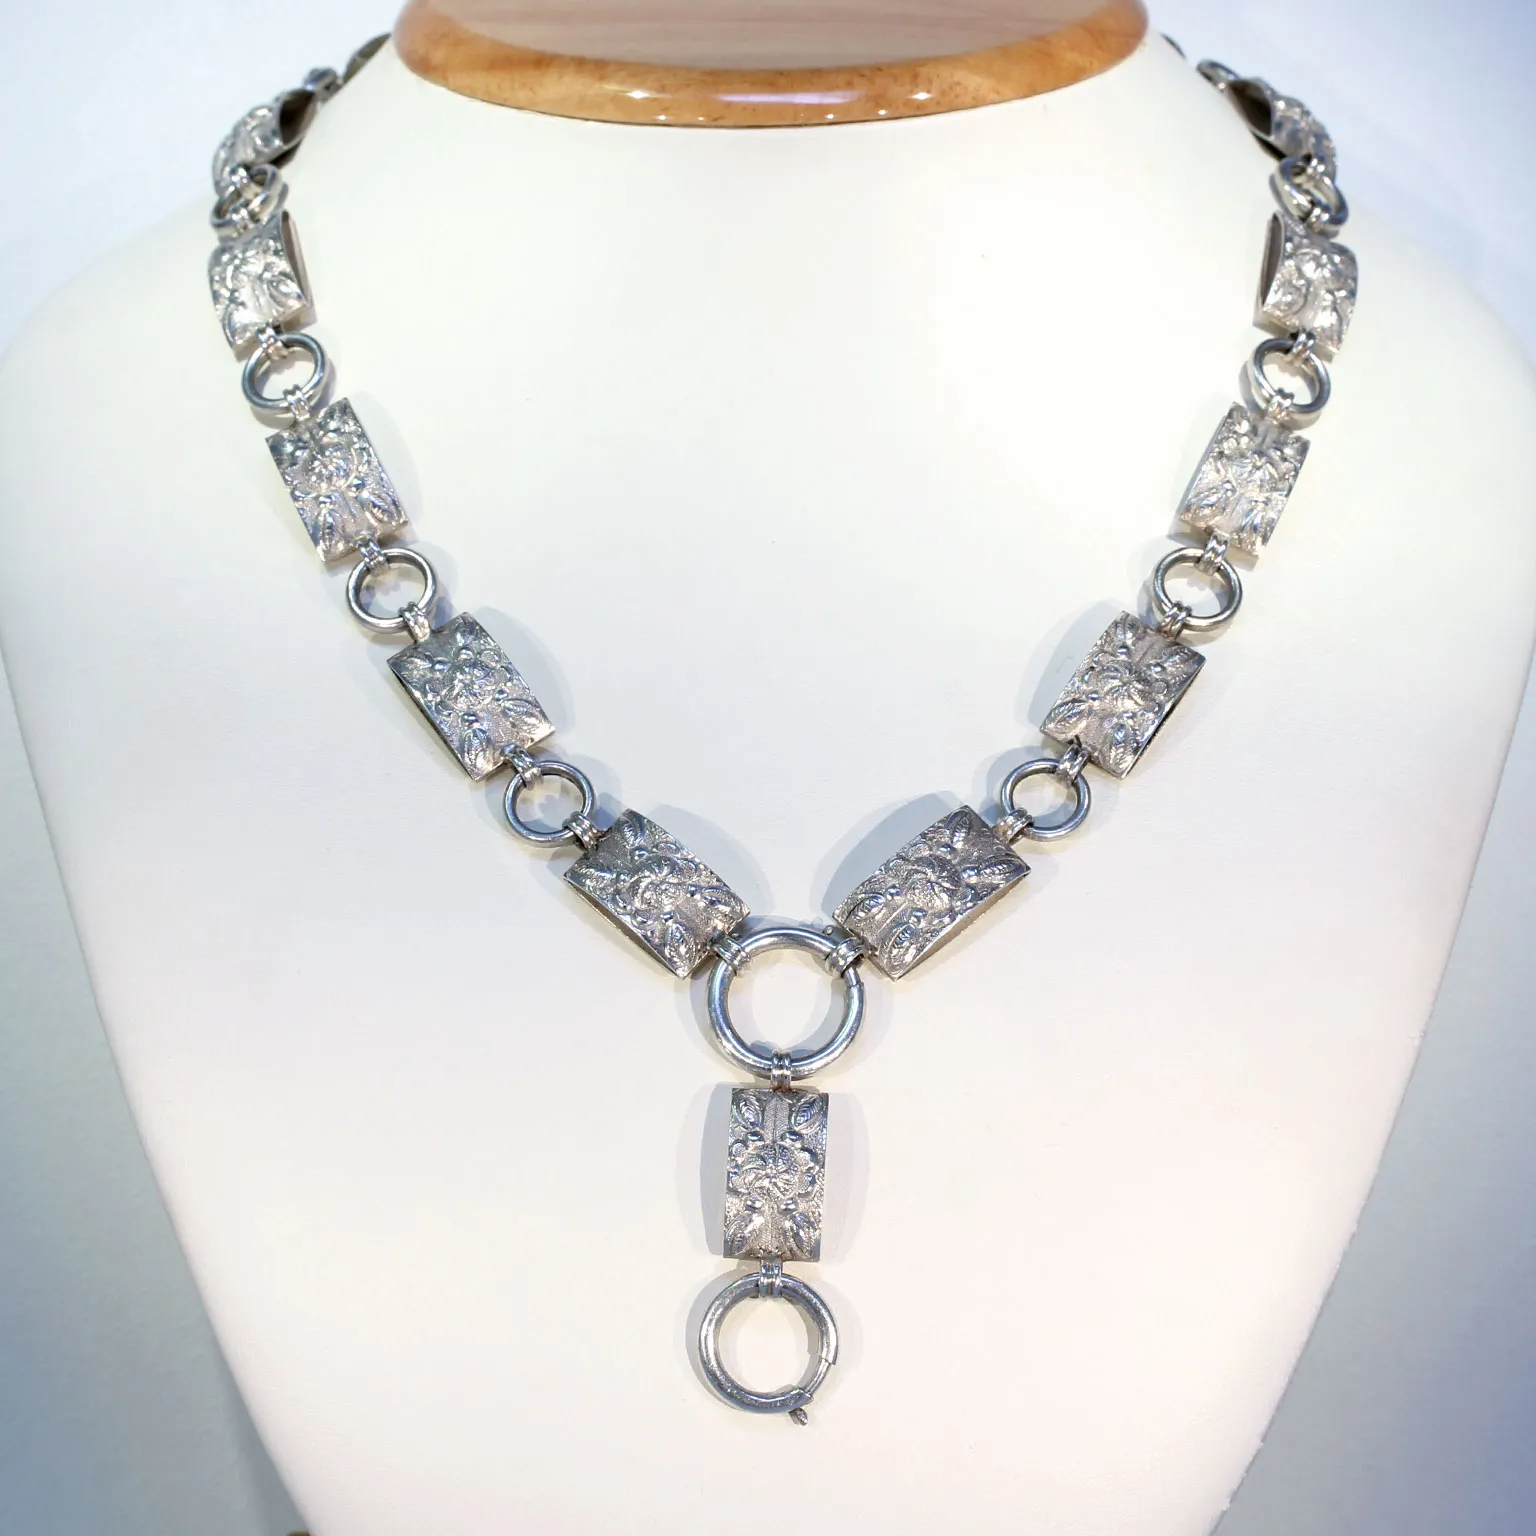 Victorian Repouss d Floral Collar Necklace in Sterling Silver